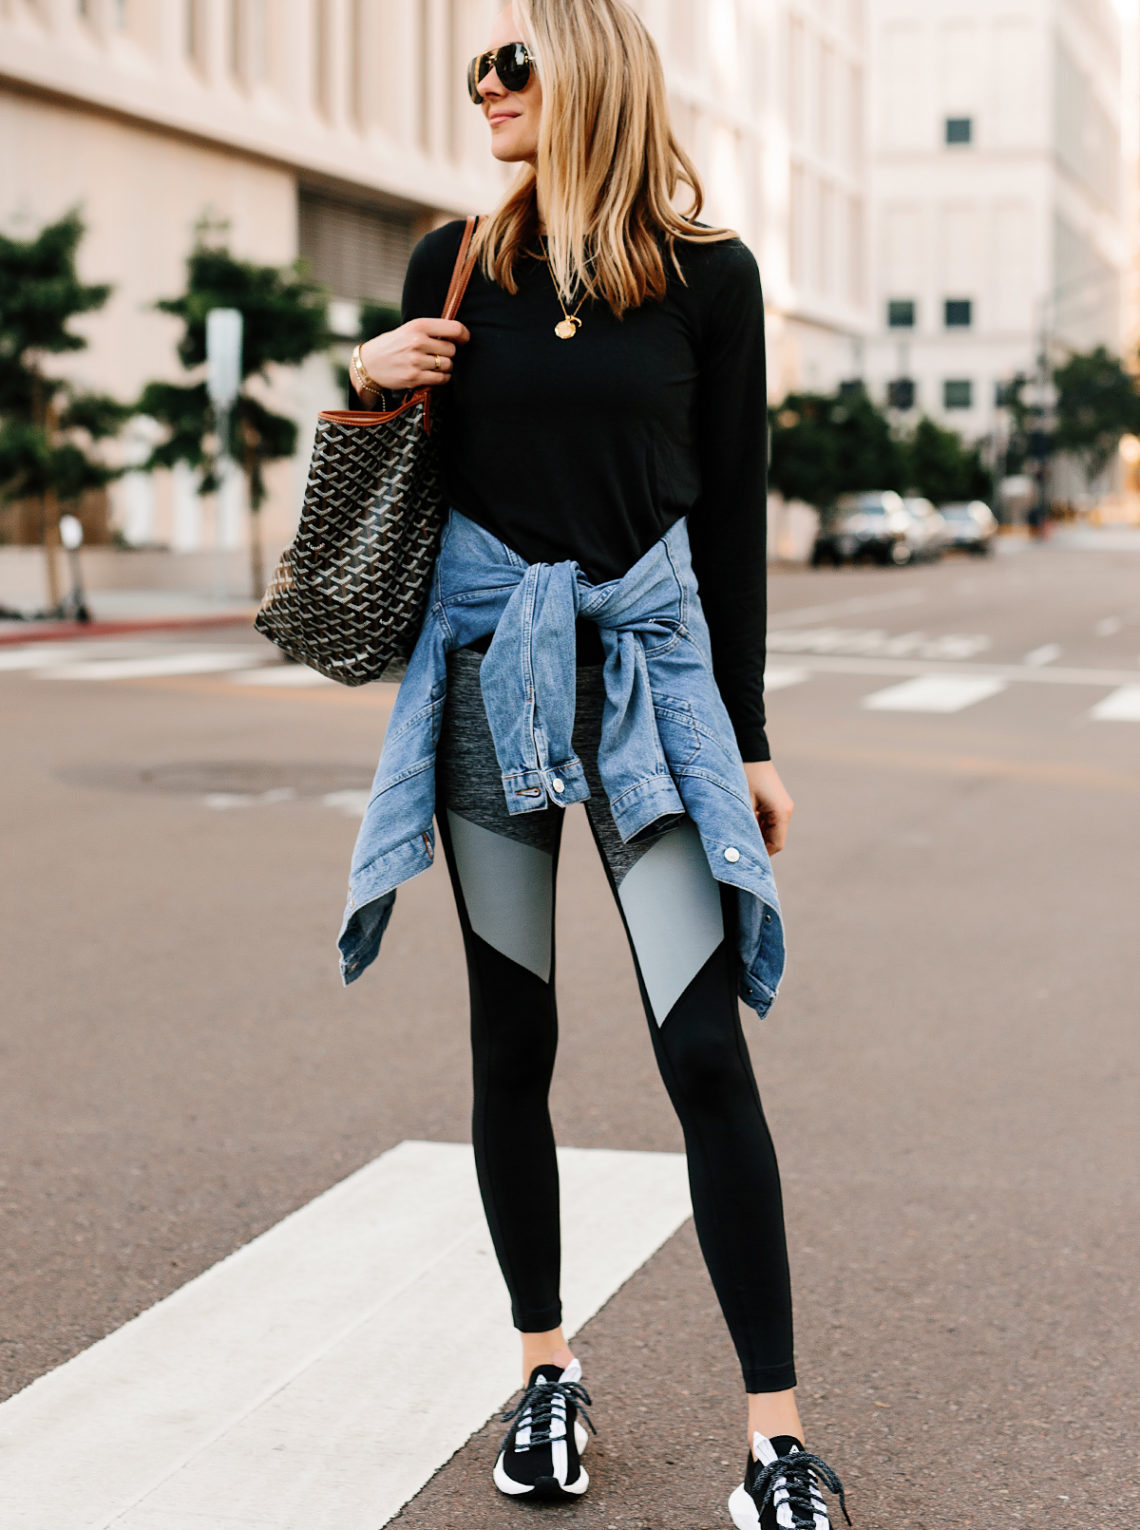 Blonde Woman Wearing Black Long Sleeve Top Denim Jacket Reebok Colorblock Leggings Reebok Sole Fury Black Sneakers Goyard Tote Fashion Jackson San Diego Fashion Blogger Athleisure Outfit